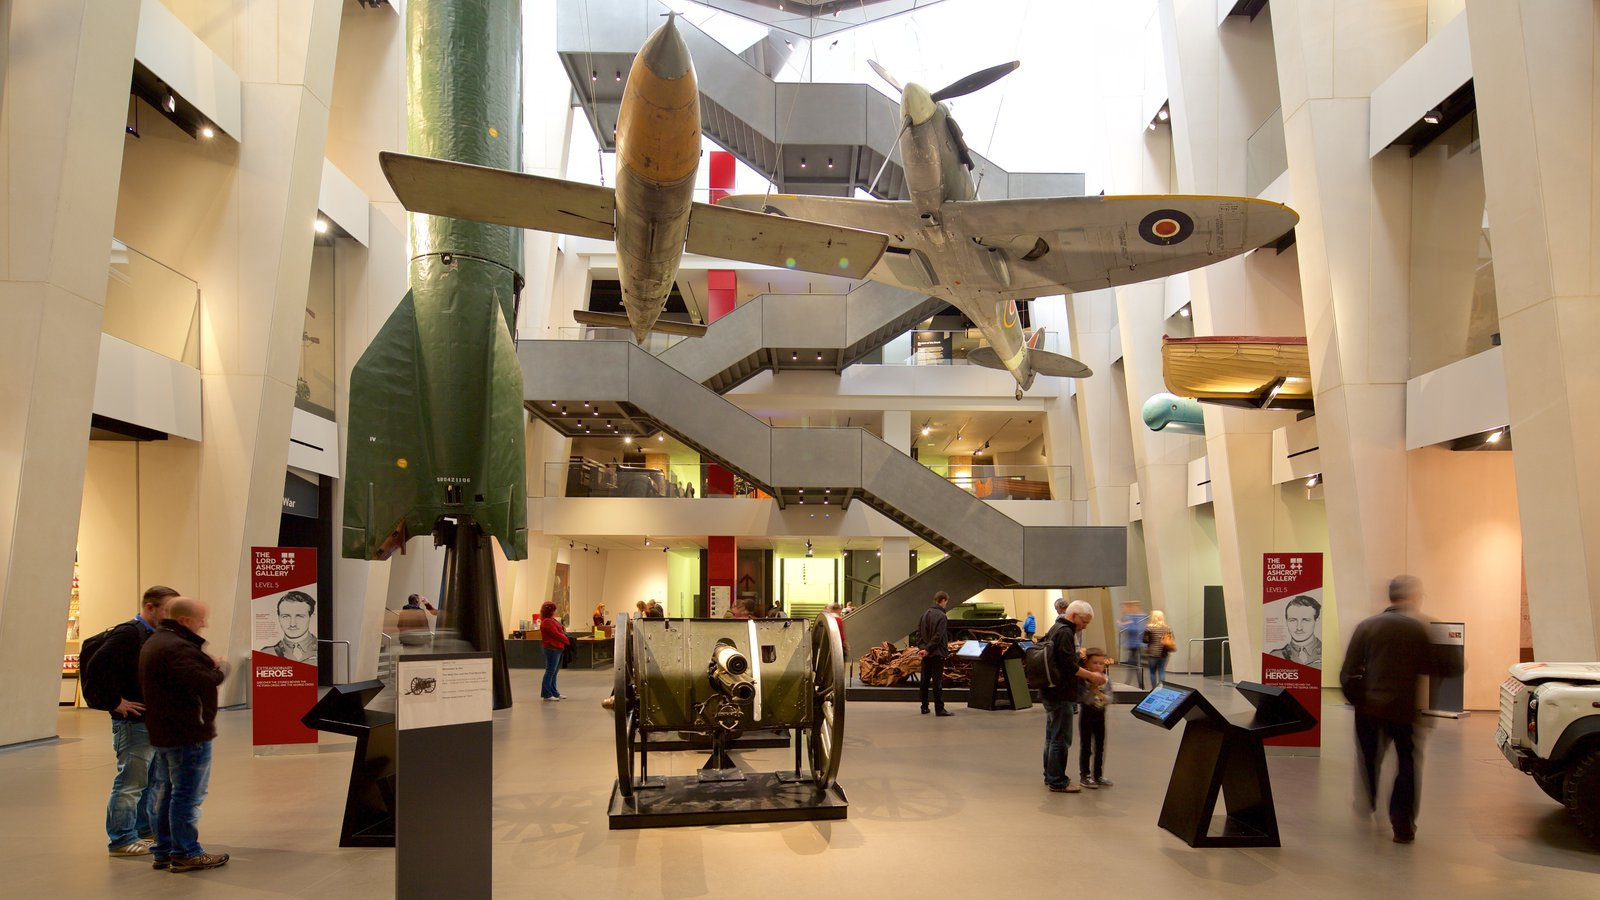 Imperial War Museum showing interior views as well as a small group of people